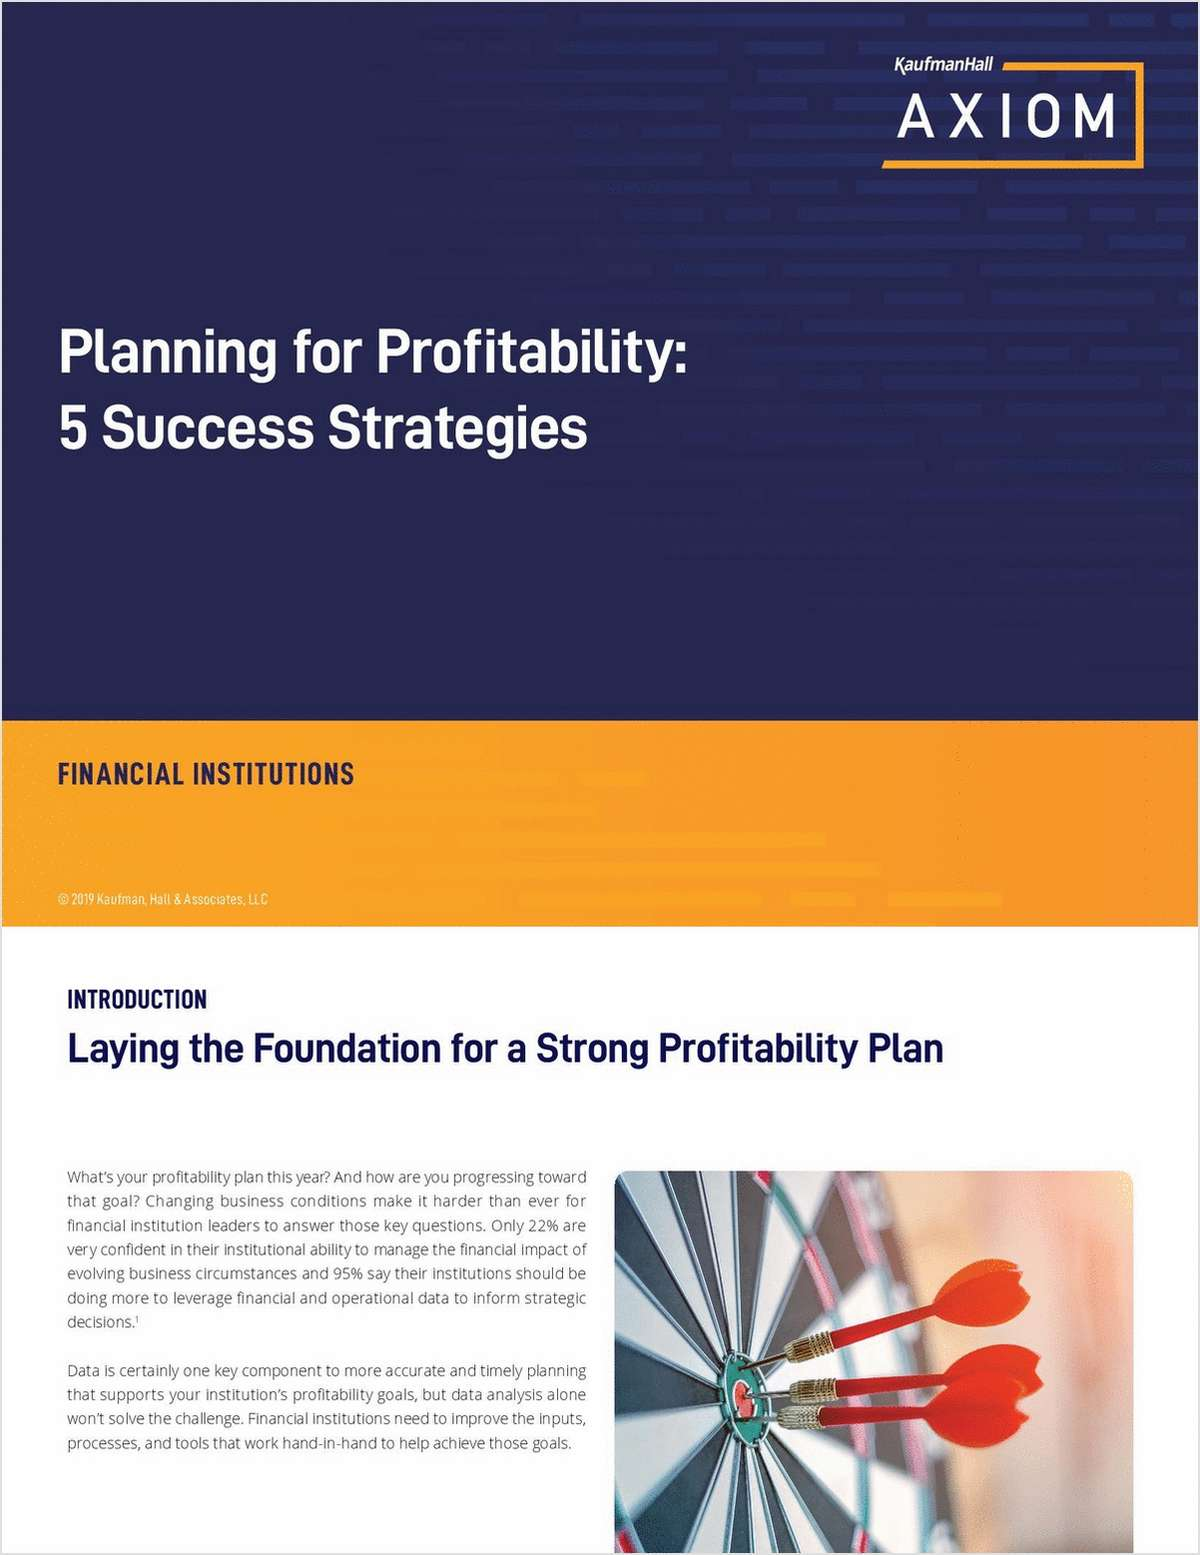 Planning for Profitability: 5 Success Strategies